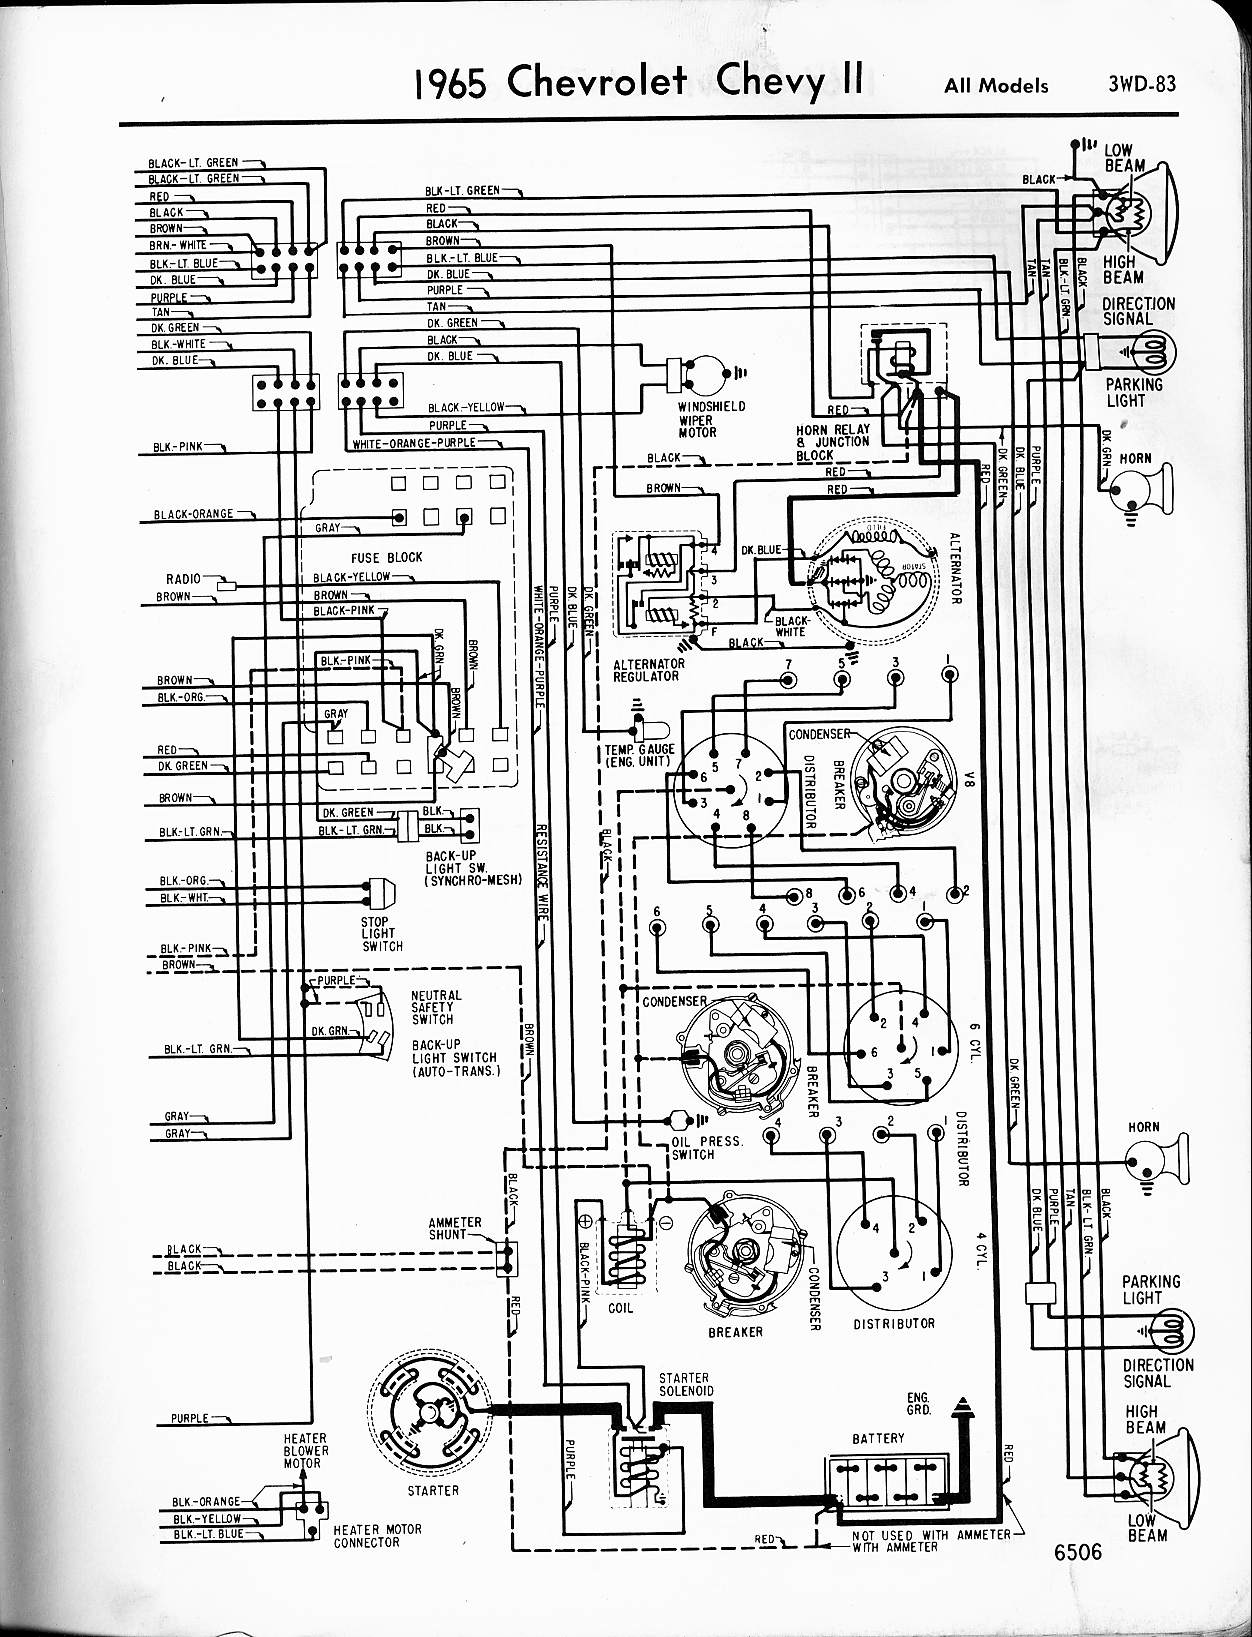 1966 chevy wiring schematic detailed schematics diagram rh keyplusrubber  com 66 Chevy Truck Wiring Diagram 1966 GMC Dash Wiring Harness